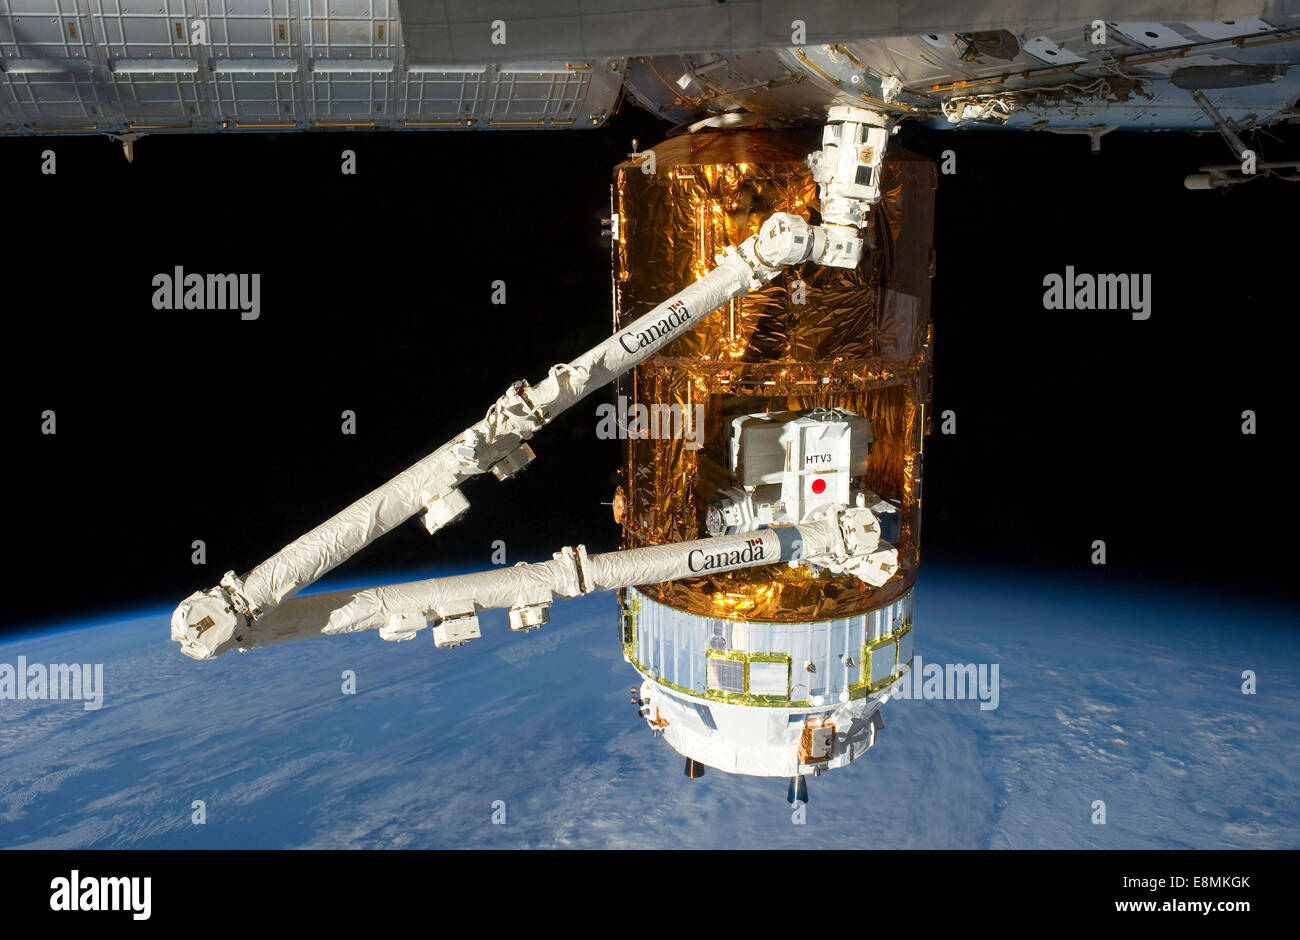 July 29, 2012 - The Japan Aerospace Exploration Agency (JAXA) H-II Transfer Vehicle (HTV-3), currently attached Stock Photo